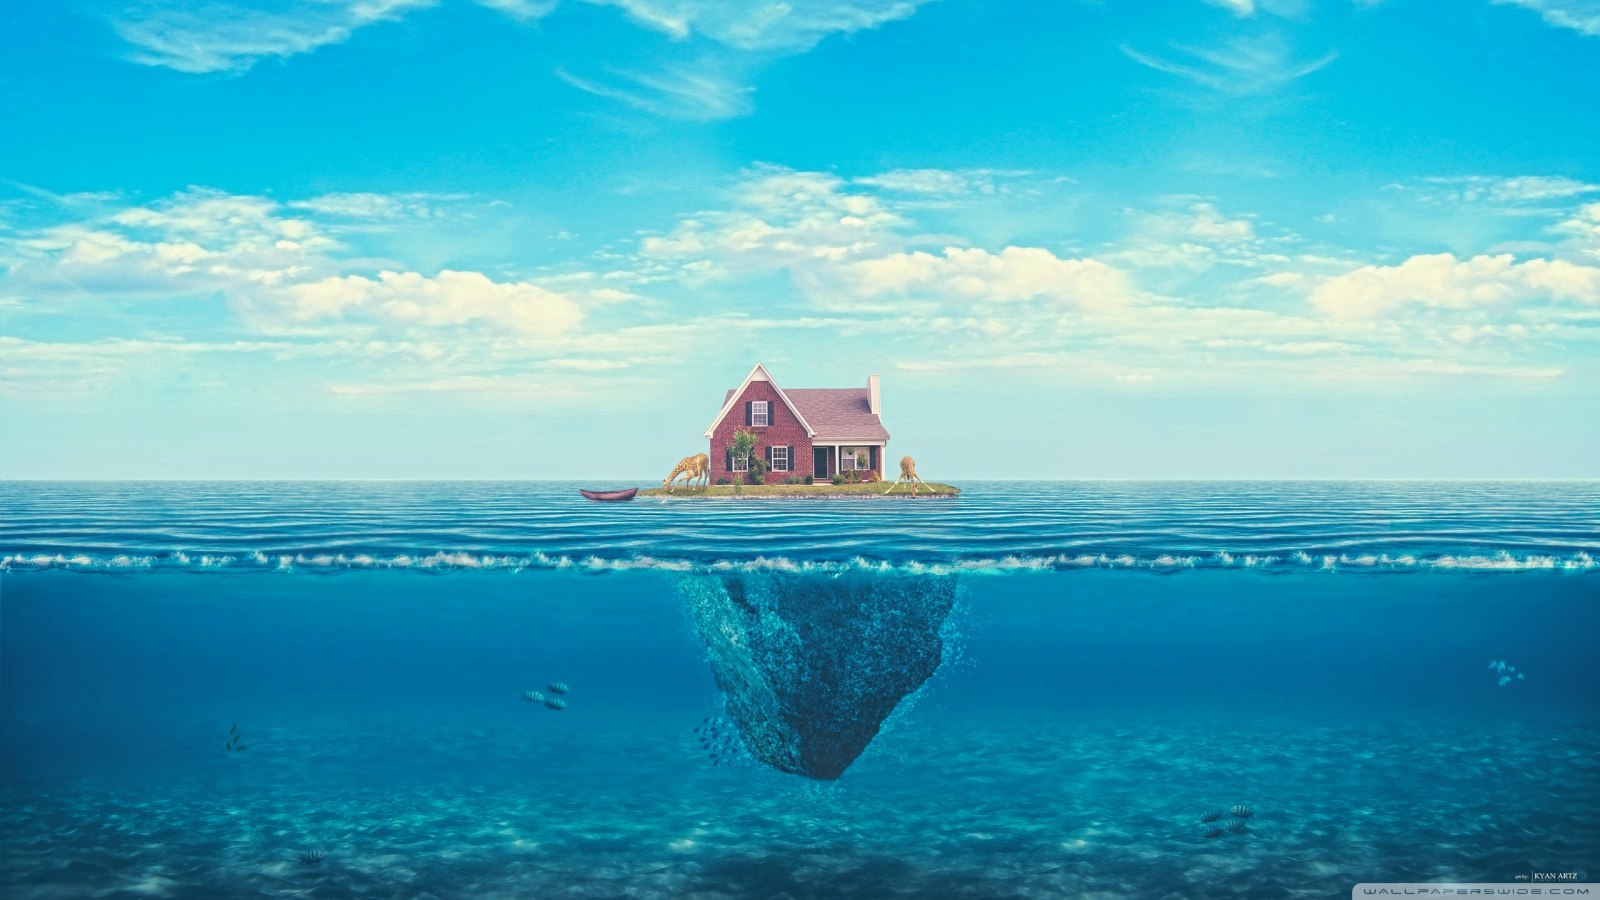 House with ocean 49501